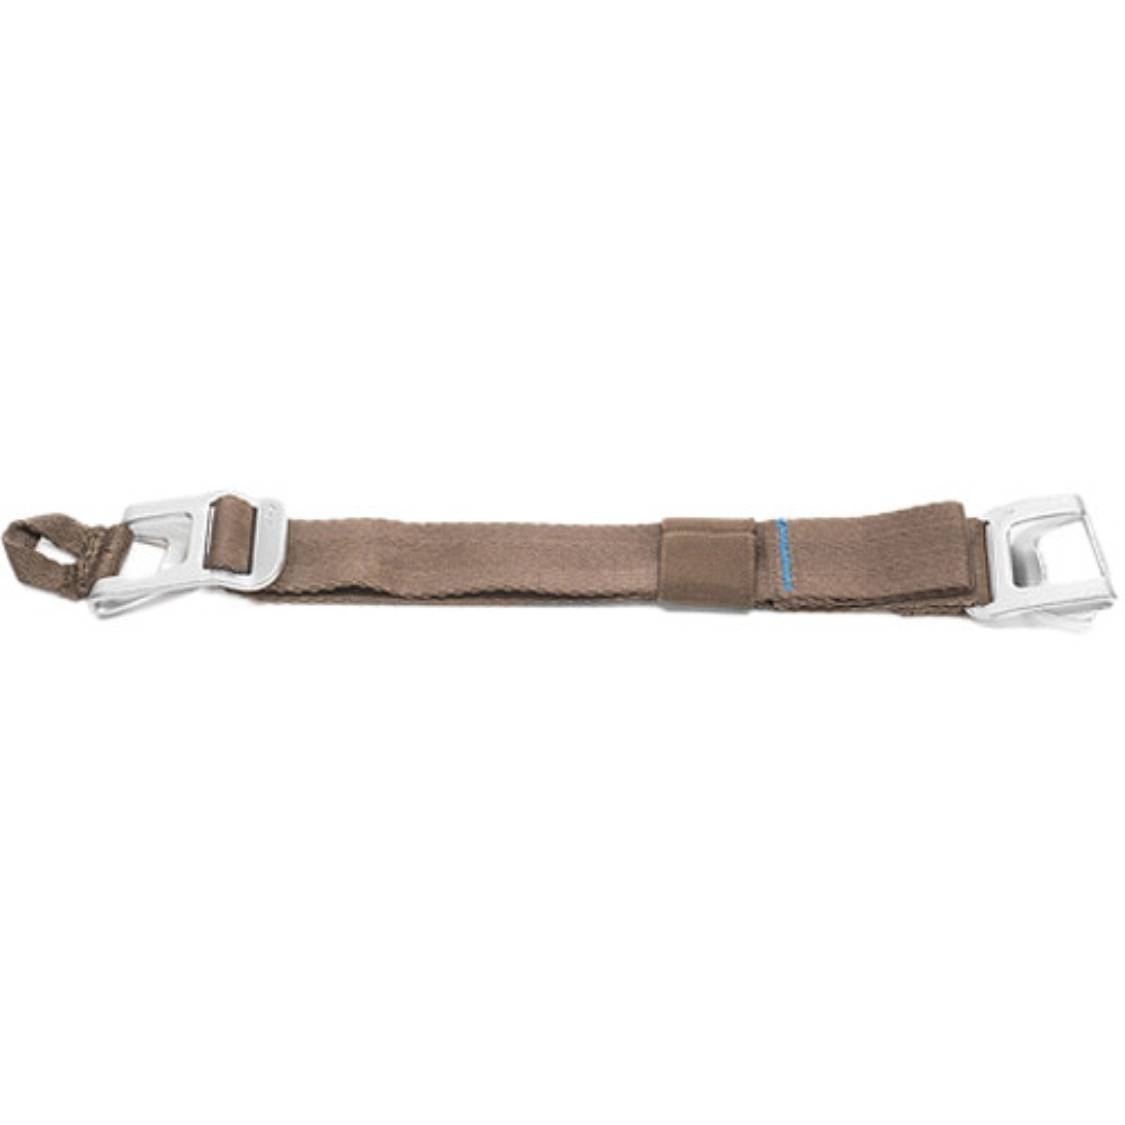 Peak Design Replacement Bag Stabilizer Strap (Brown)